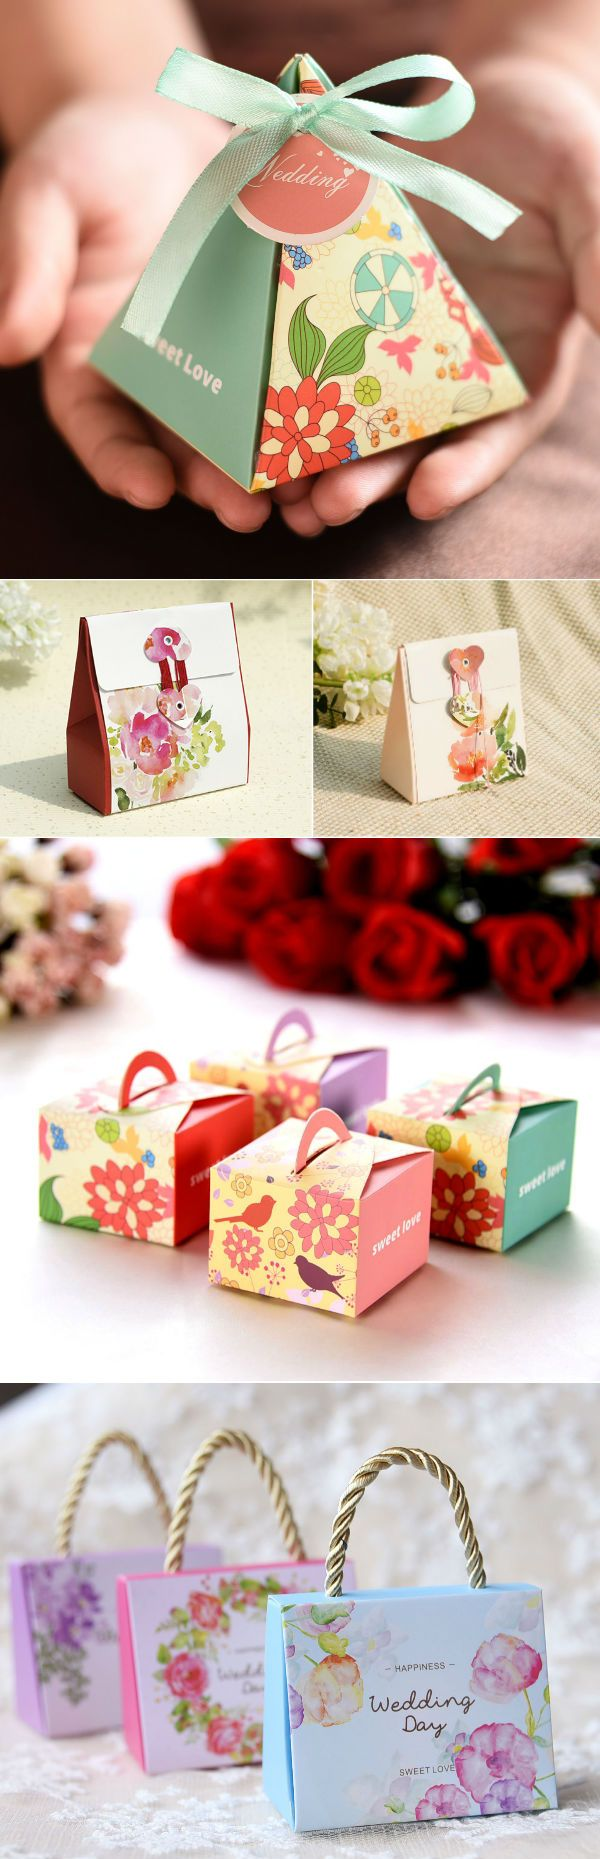 chic paper box wedding favors ideas